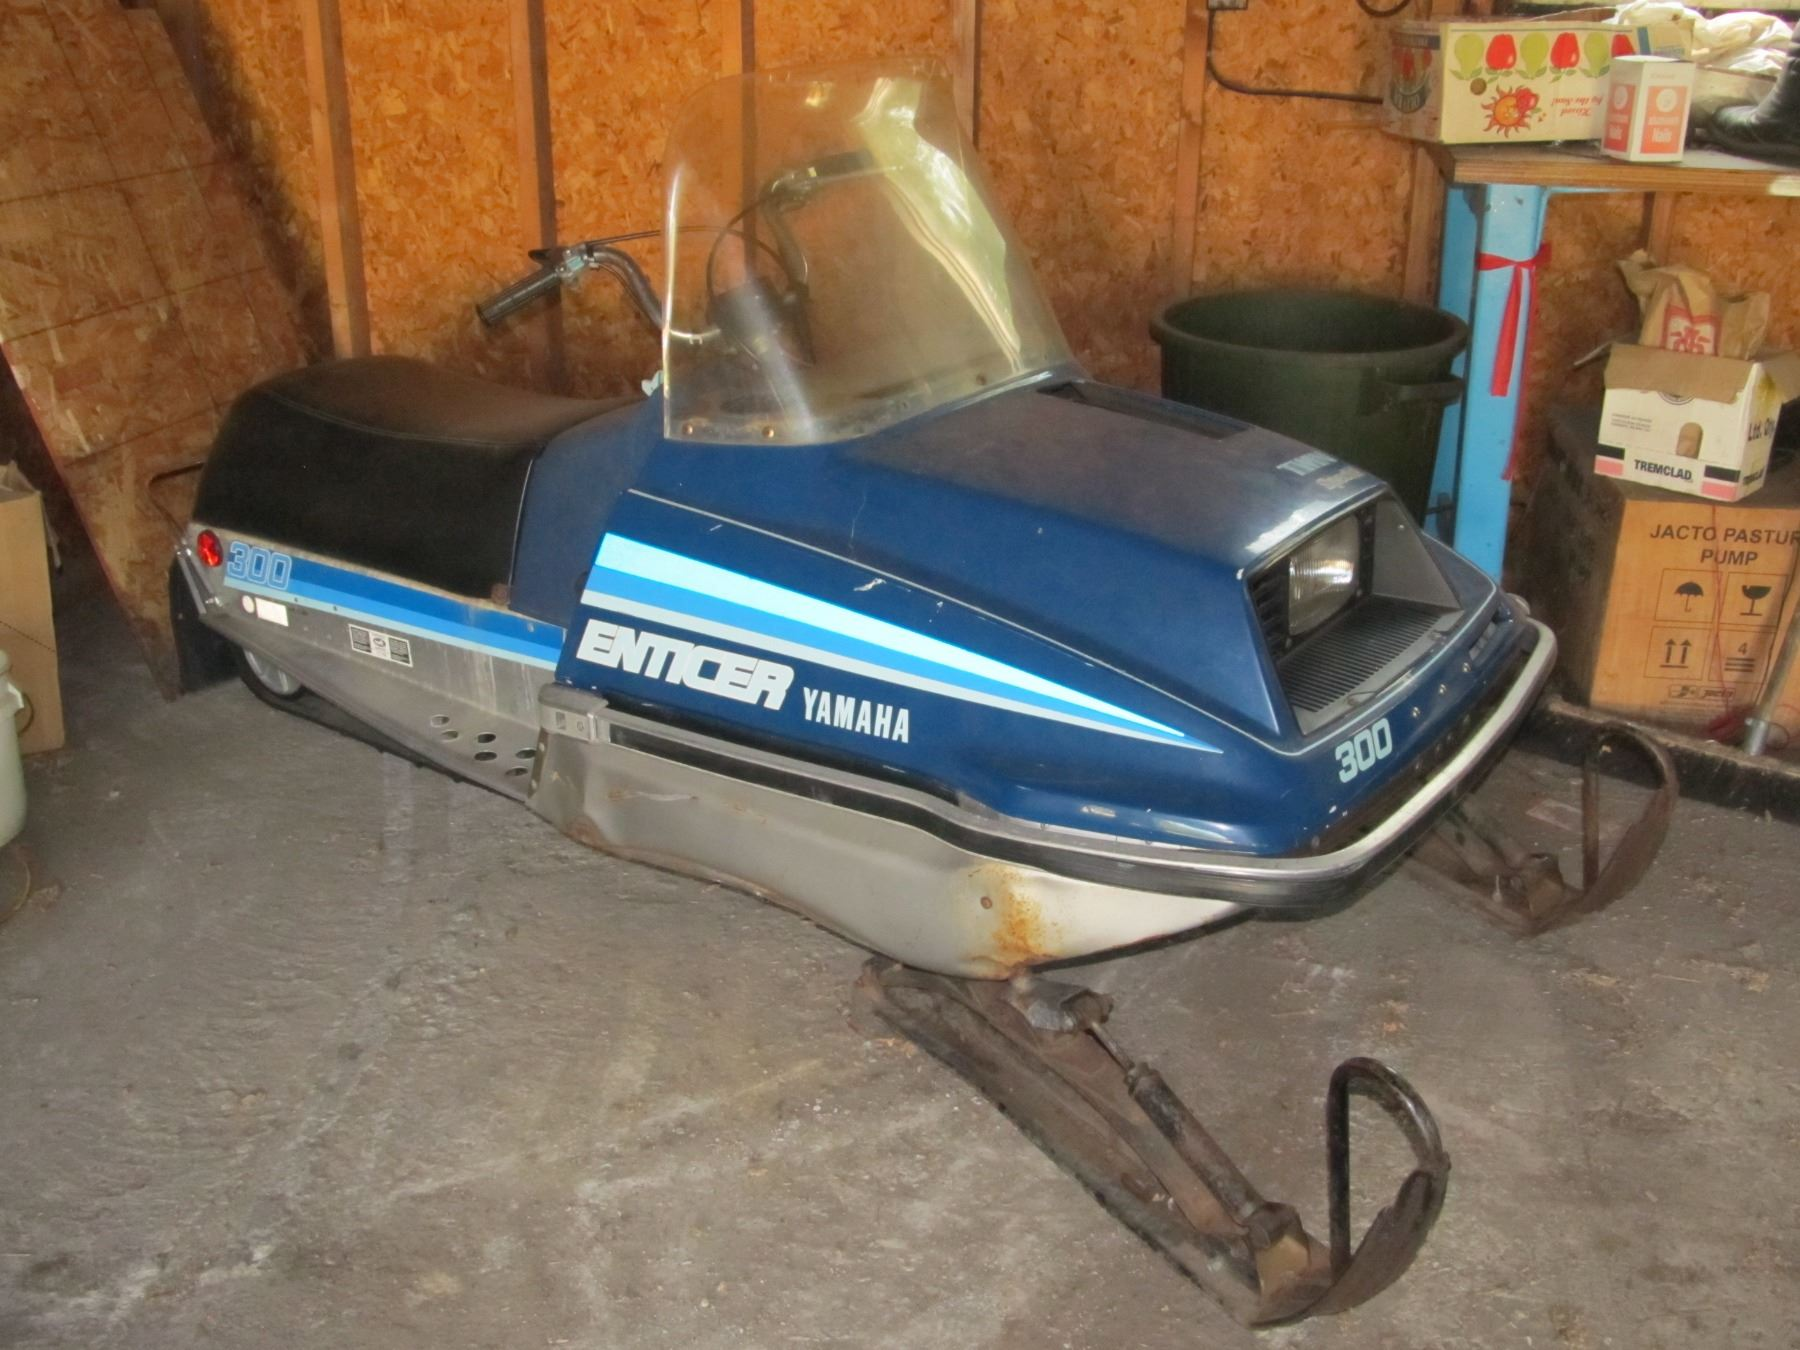 YAMAHA ENTICER 300 TWIN SPECIAL SNOWMOBILE